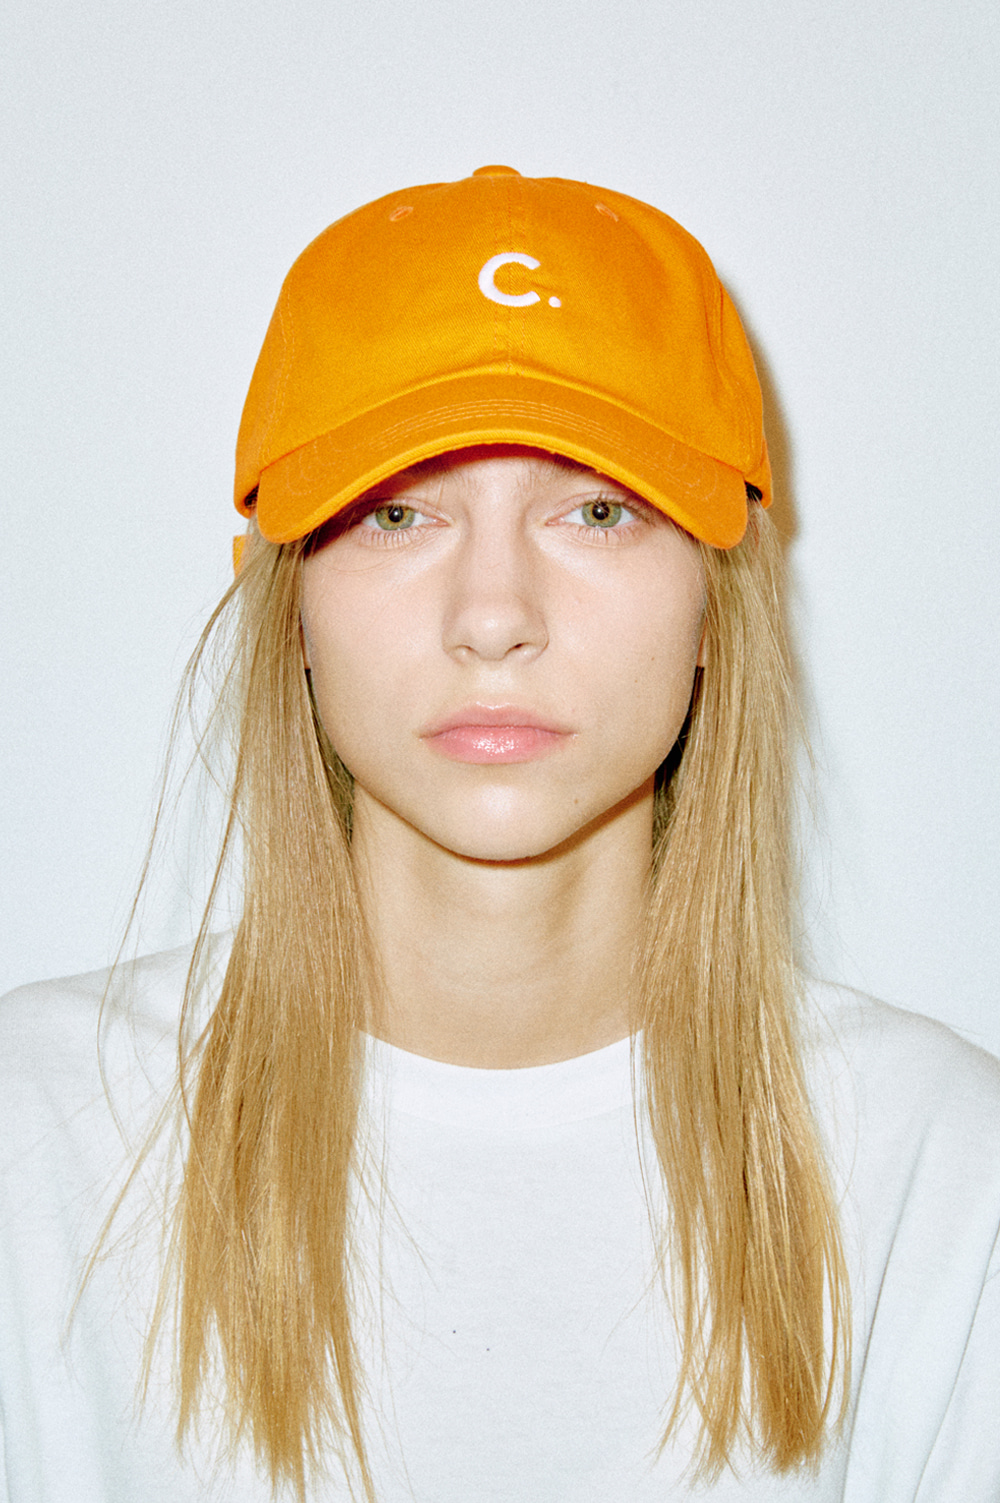 Basic Fit Ball Cap (Orange)